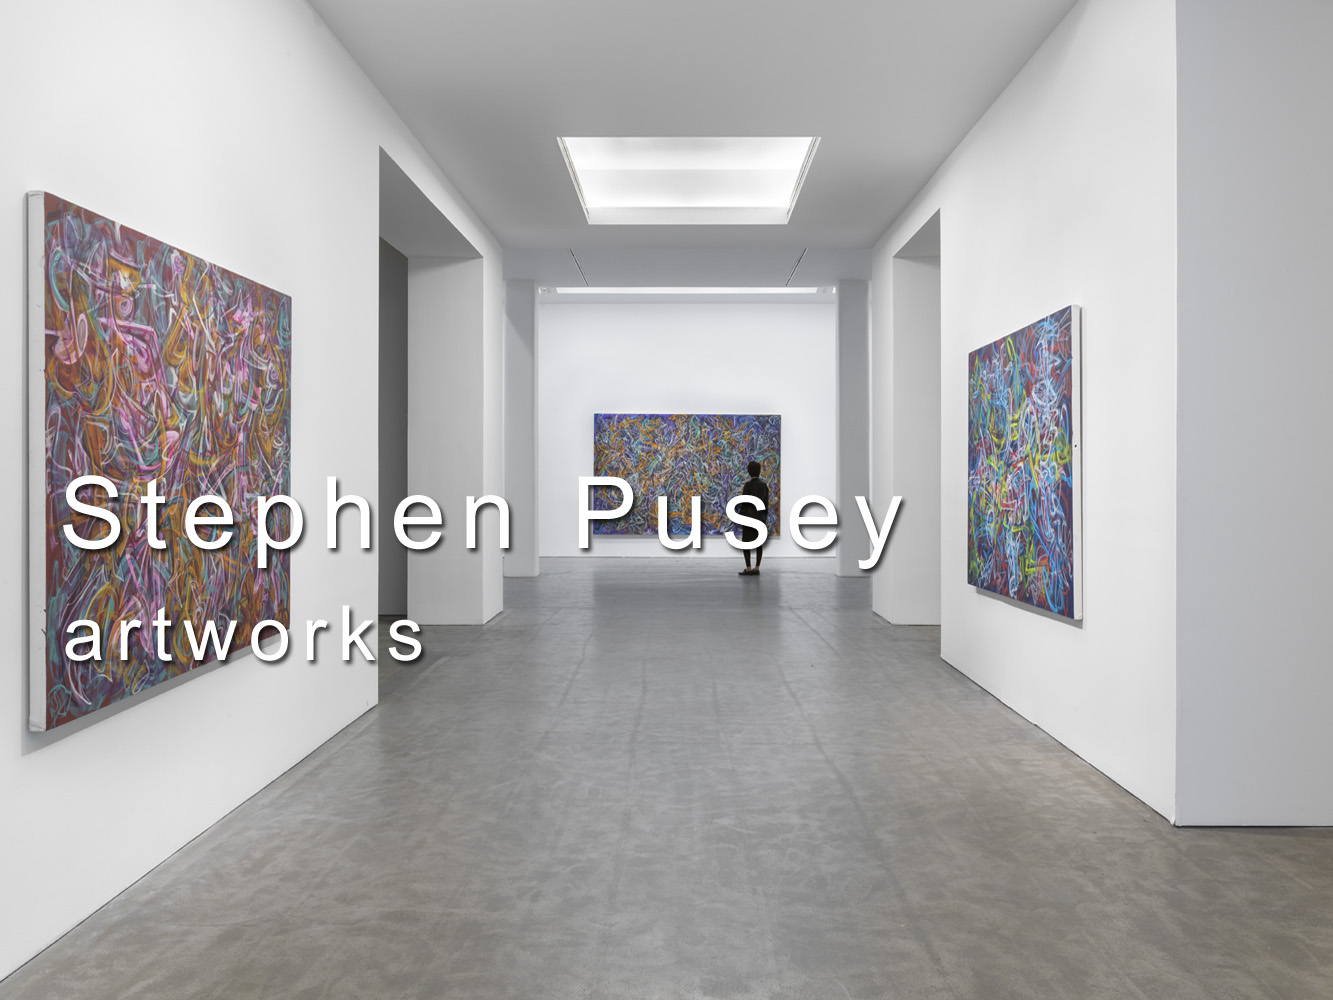 Stephen Pusey artworks